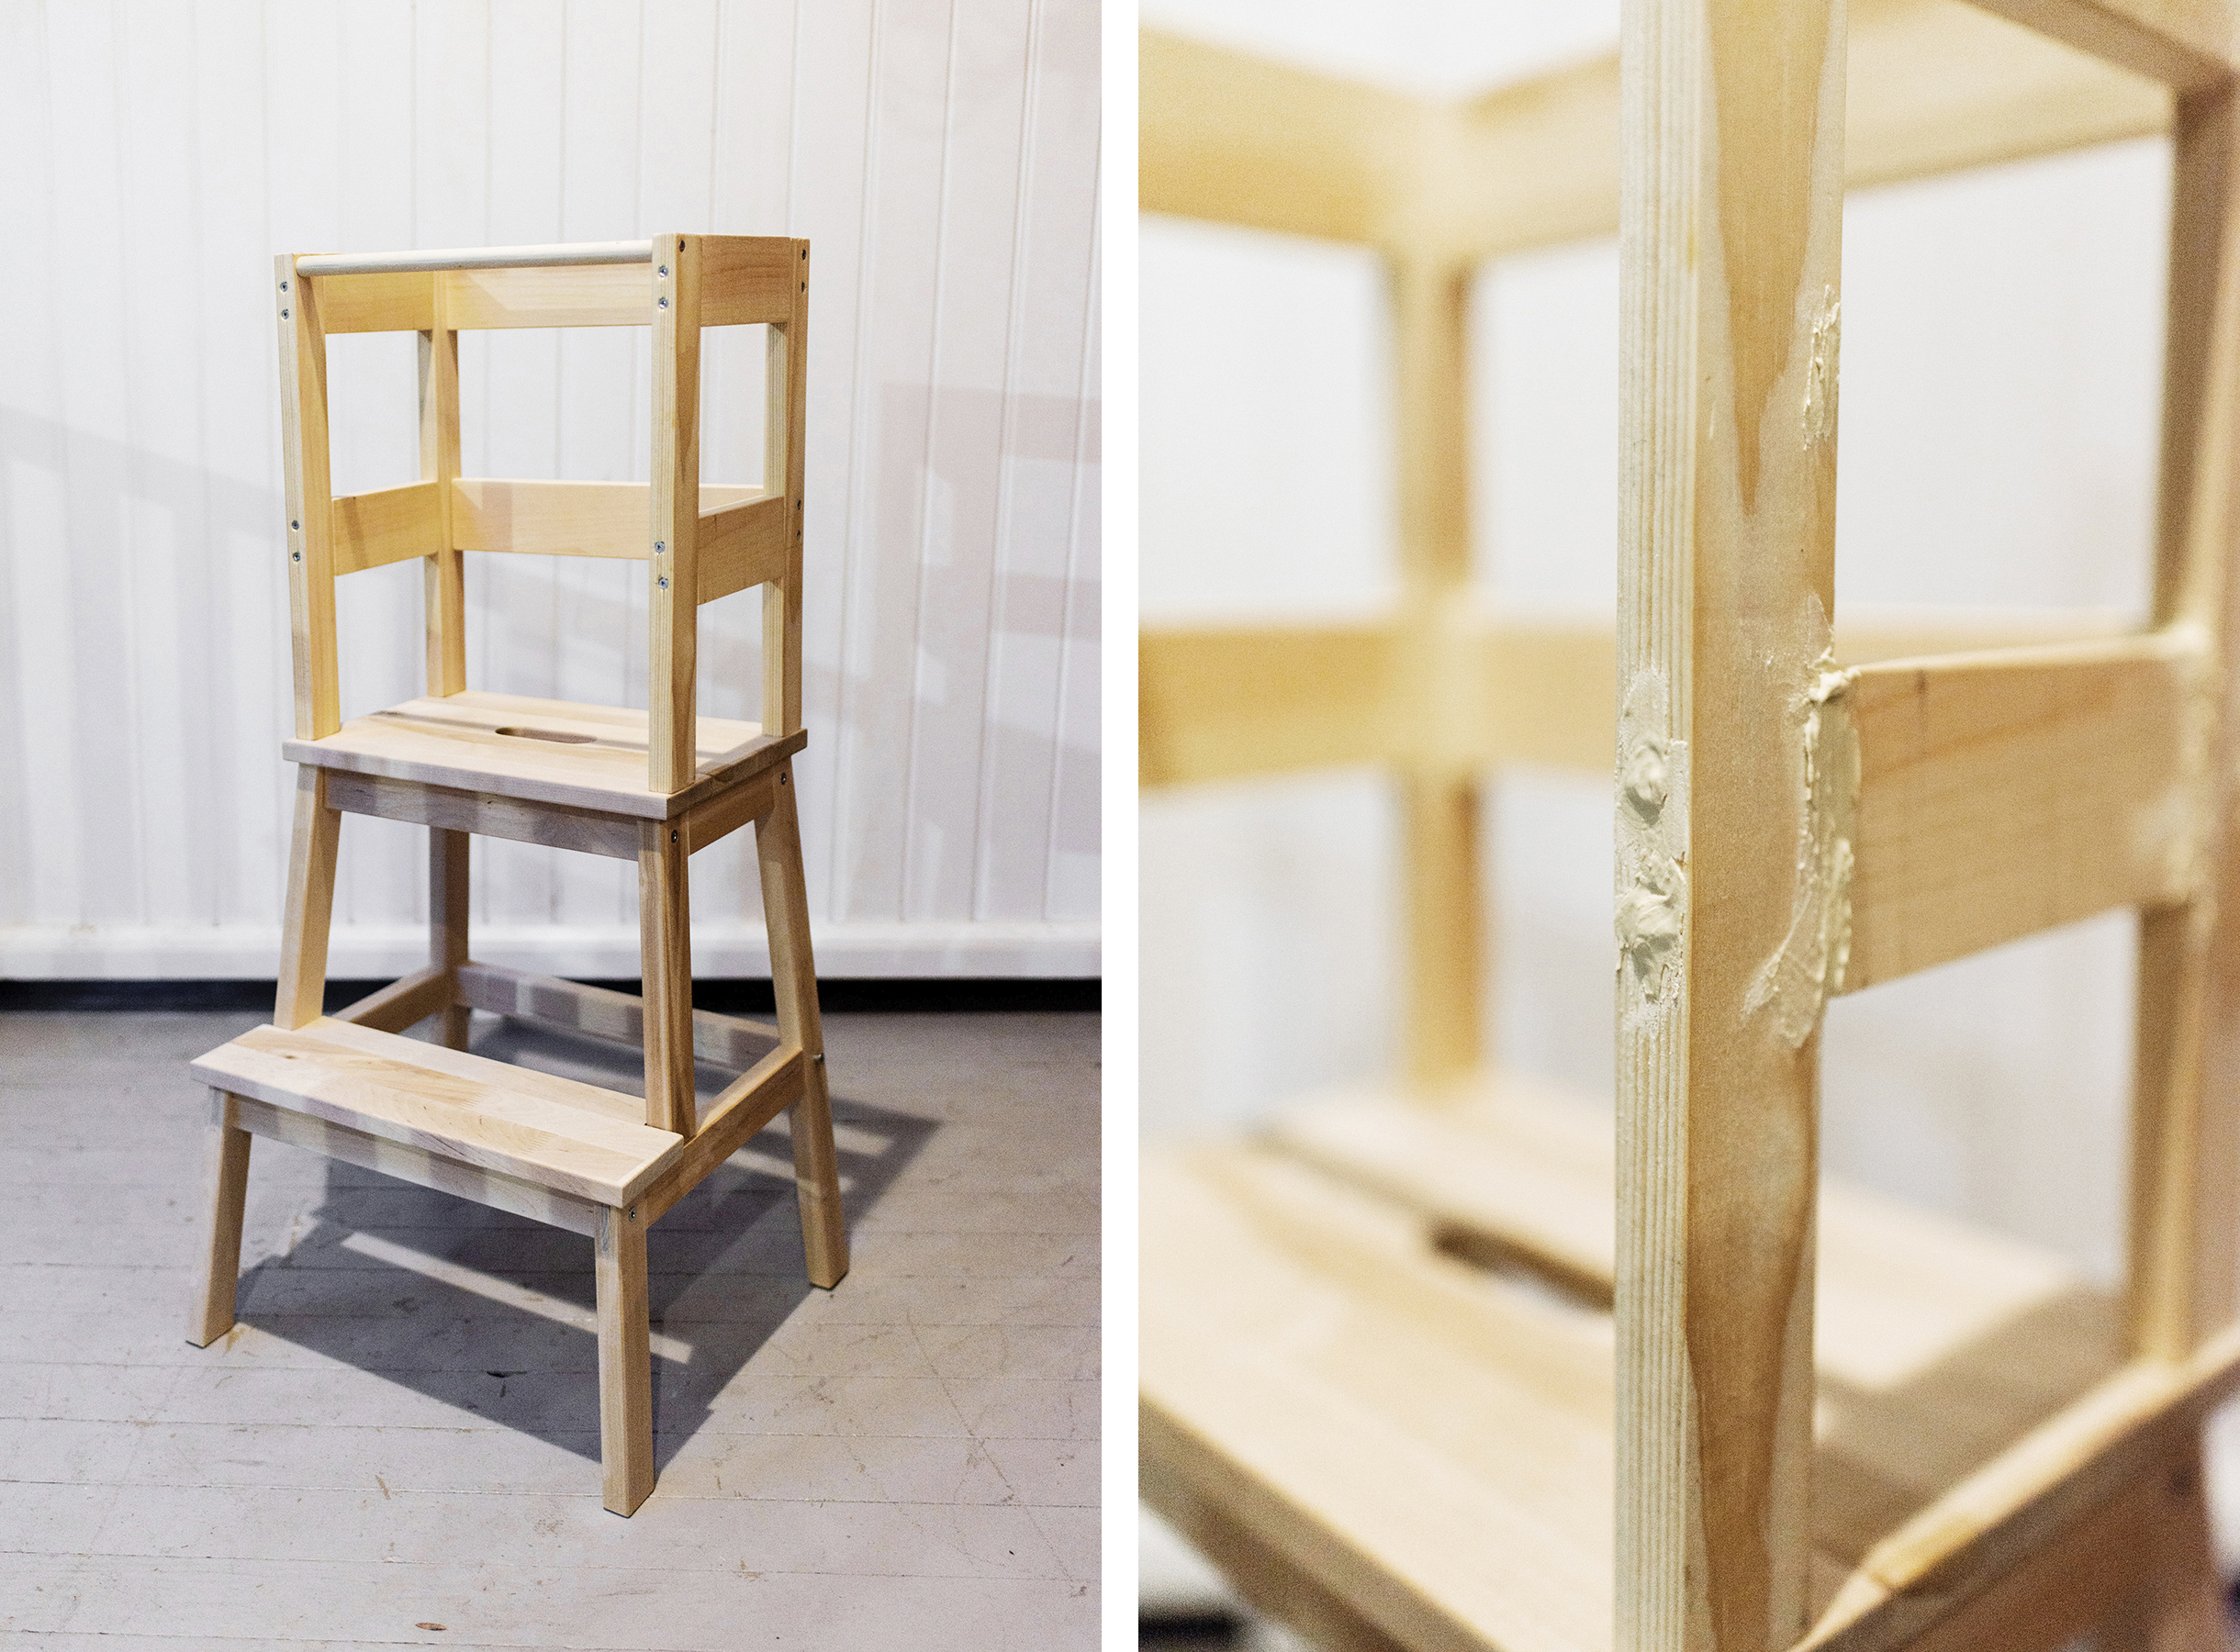 Ikea hack - toddler learning tower using a Bekvm stool | Tutorial - step-by